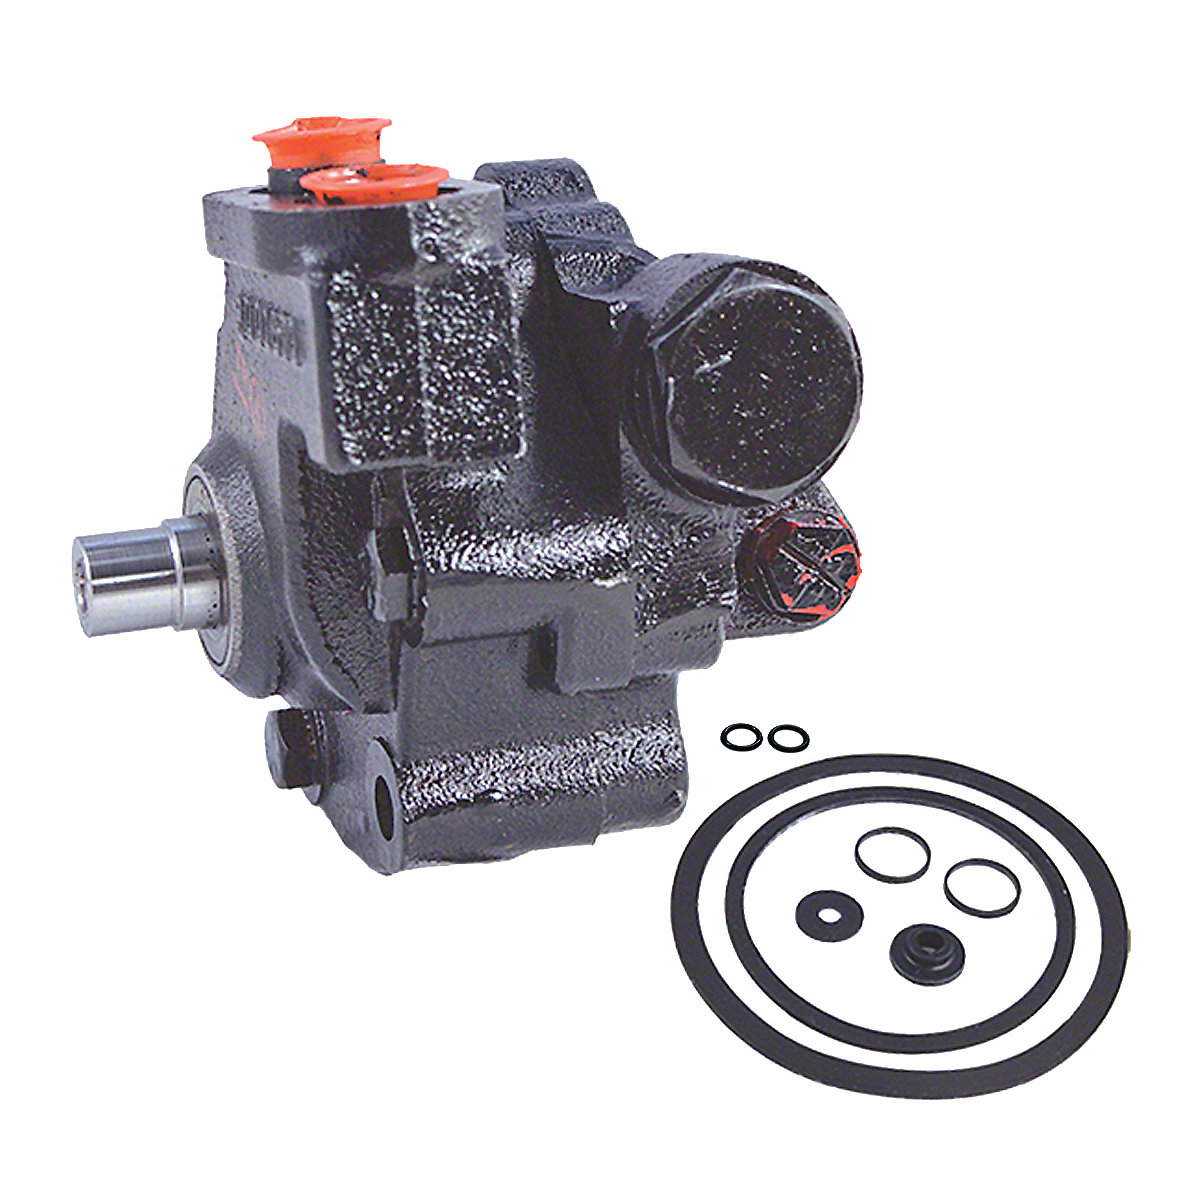 Steiner Tractor Parts Oil Pumps : Abc belt driven power steering pump only for